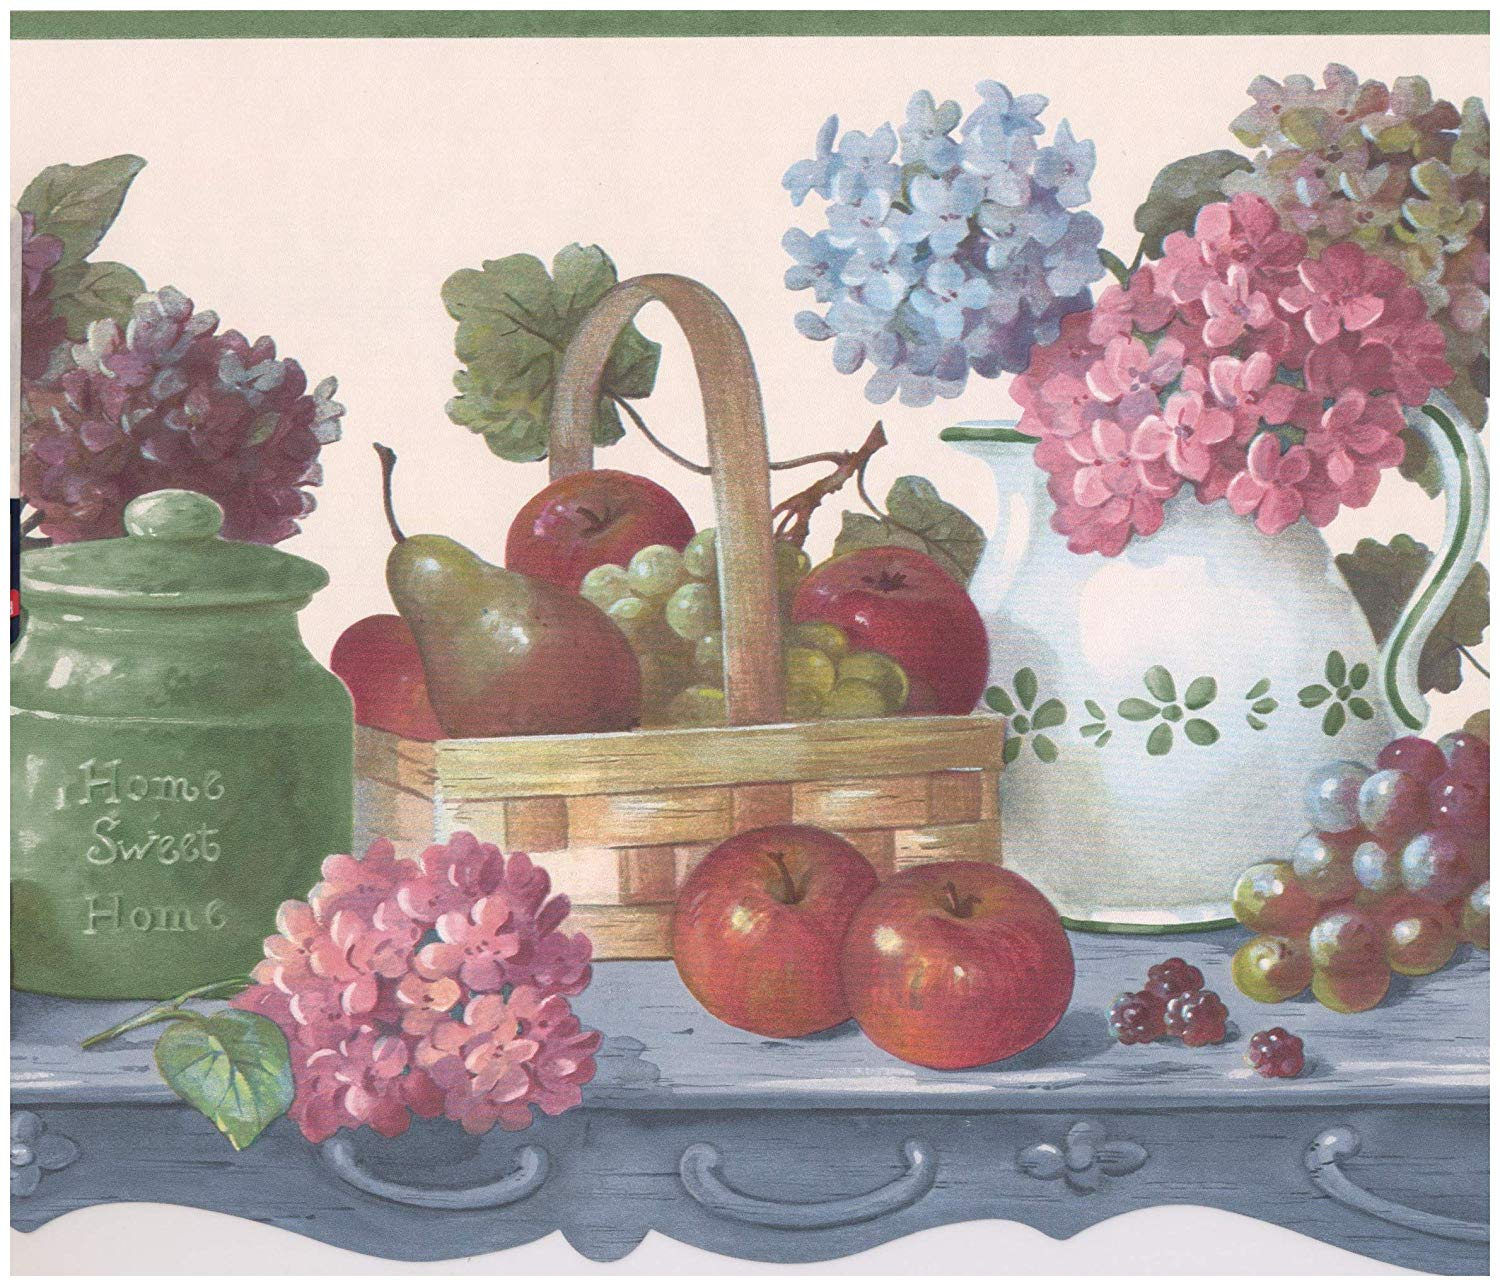 Fruits and Berries in Baskets on Kitchen Table Farmhouse Wallpaper 1500x1286